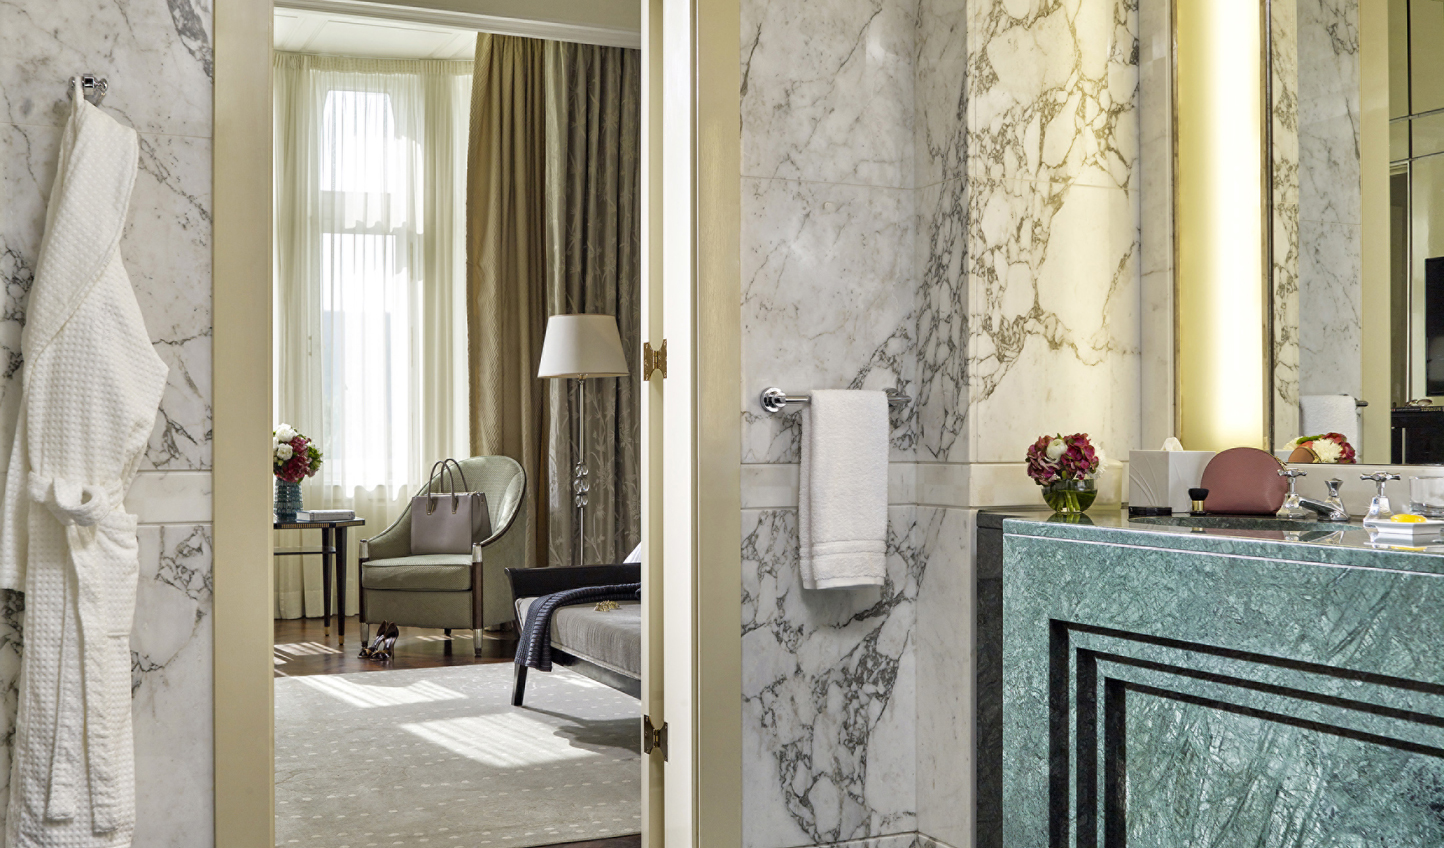 Marble bathrooms add an extra level of luxury